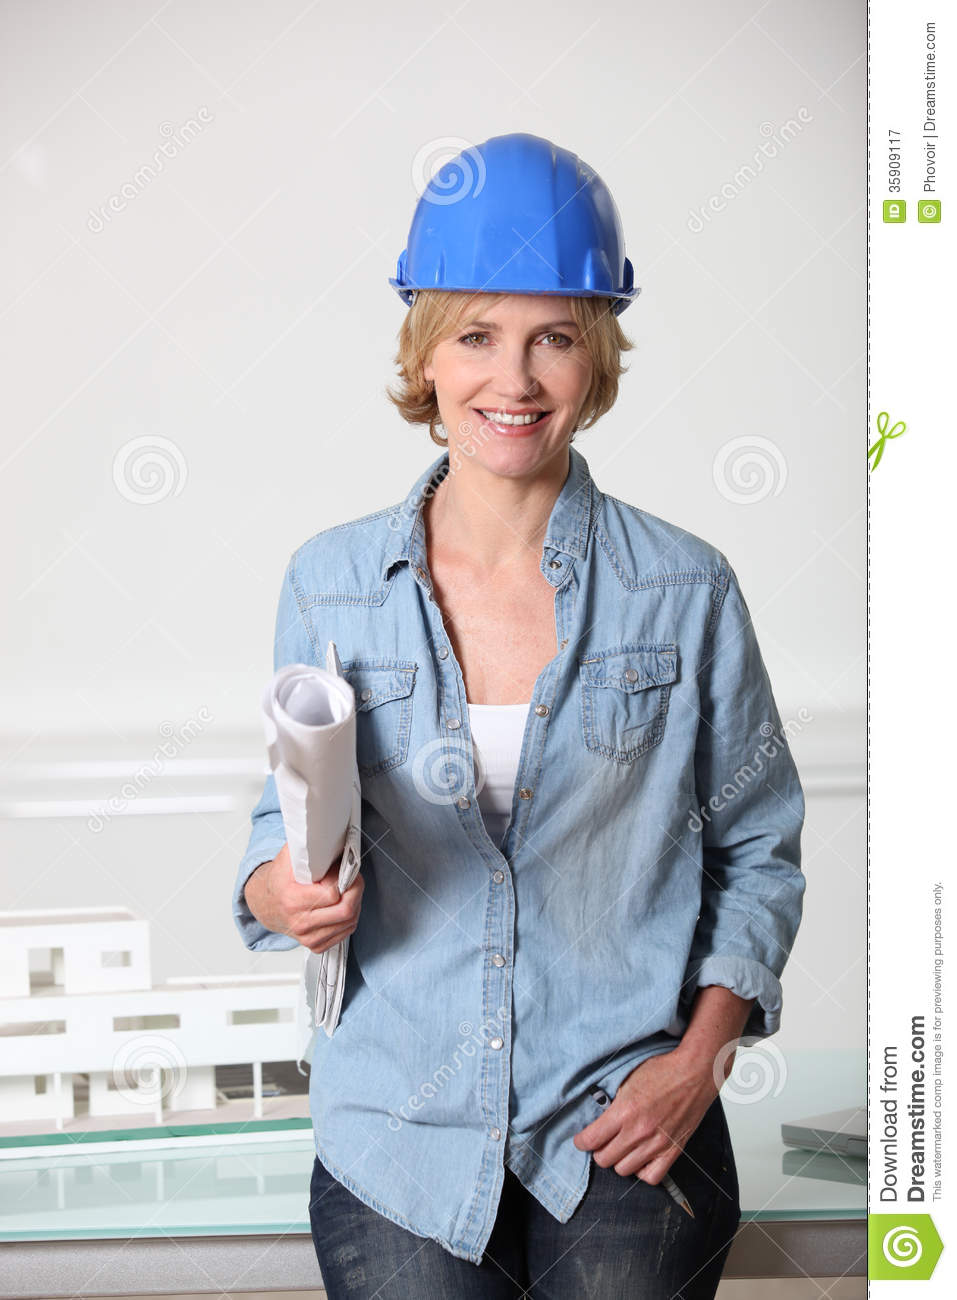 woman in hard hat stock image image of european adults 35909117